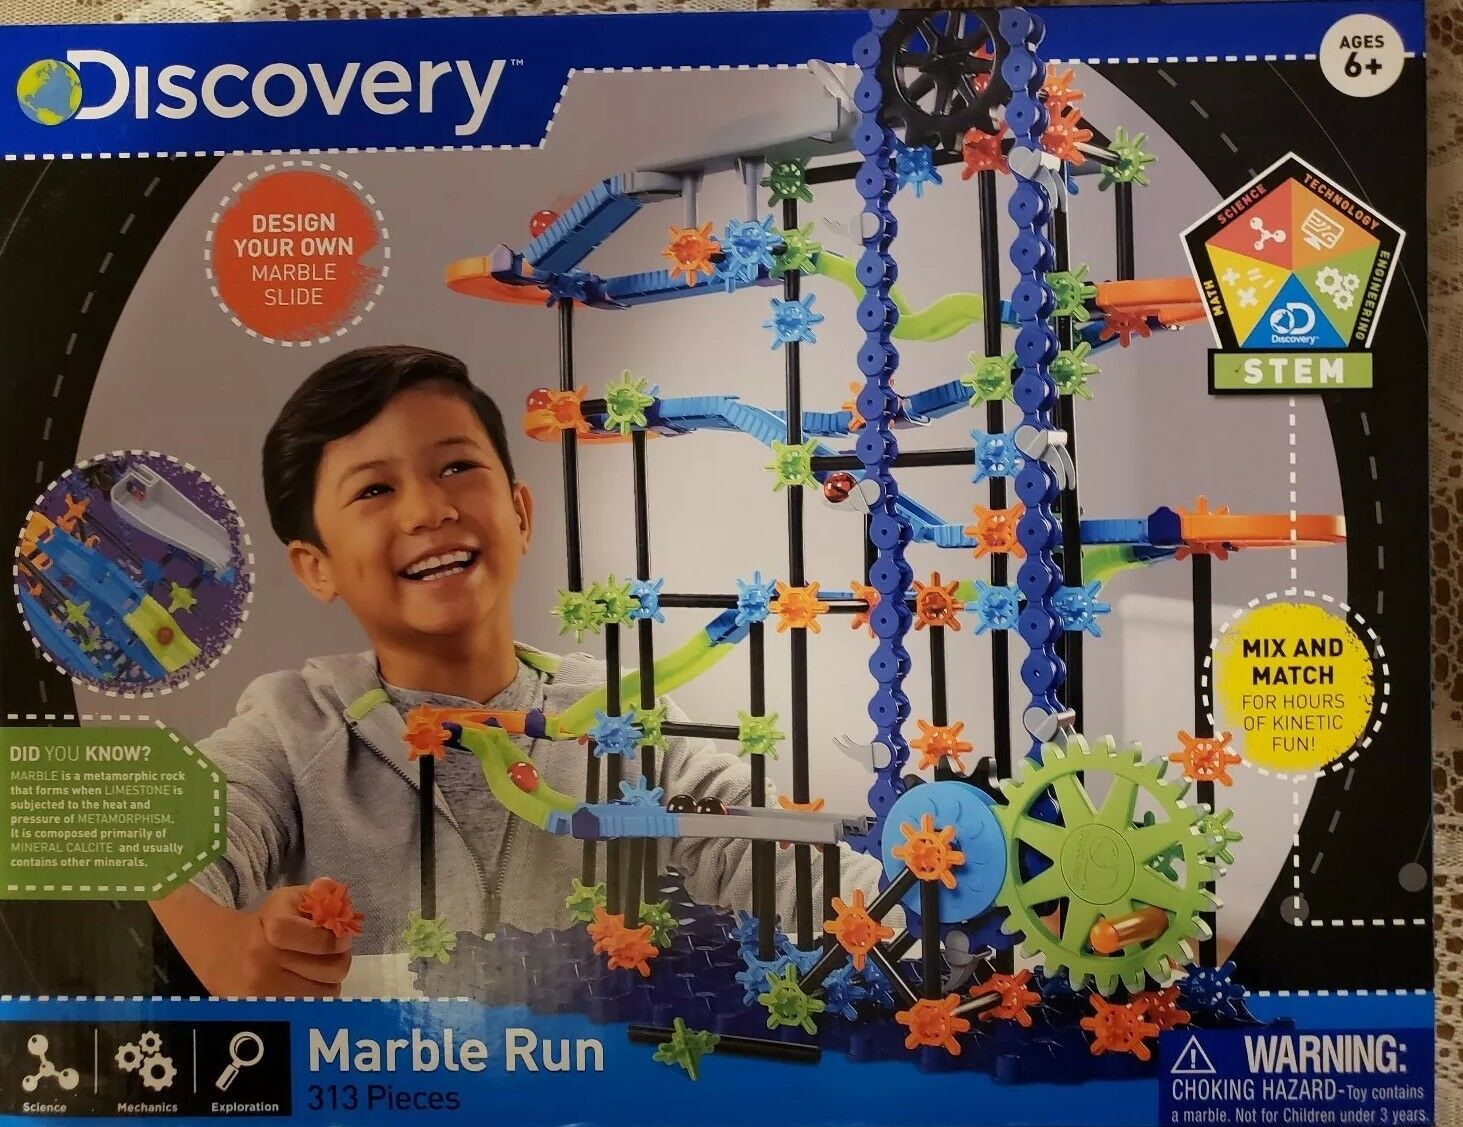 Discovery Marble Run 313 Pieces Design Your Own Own Own Marble Slide New in Box f09013